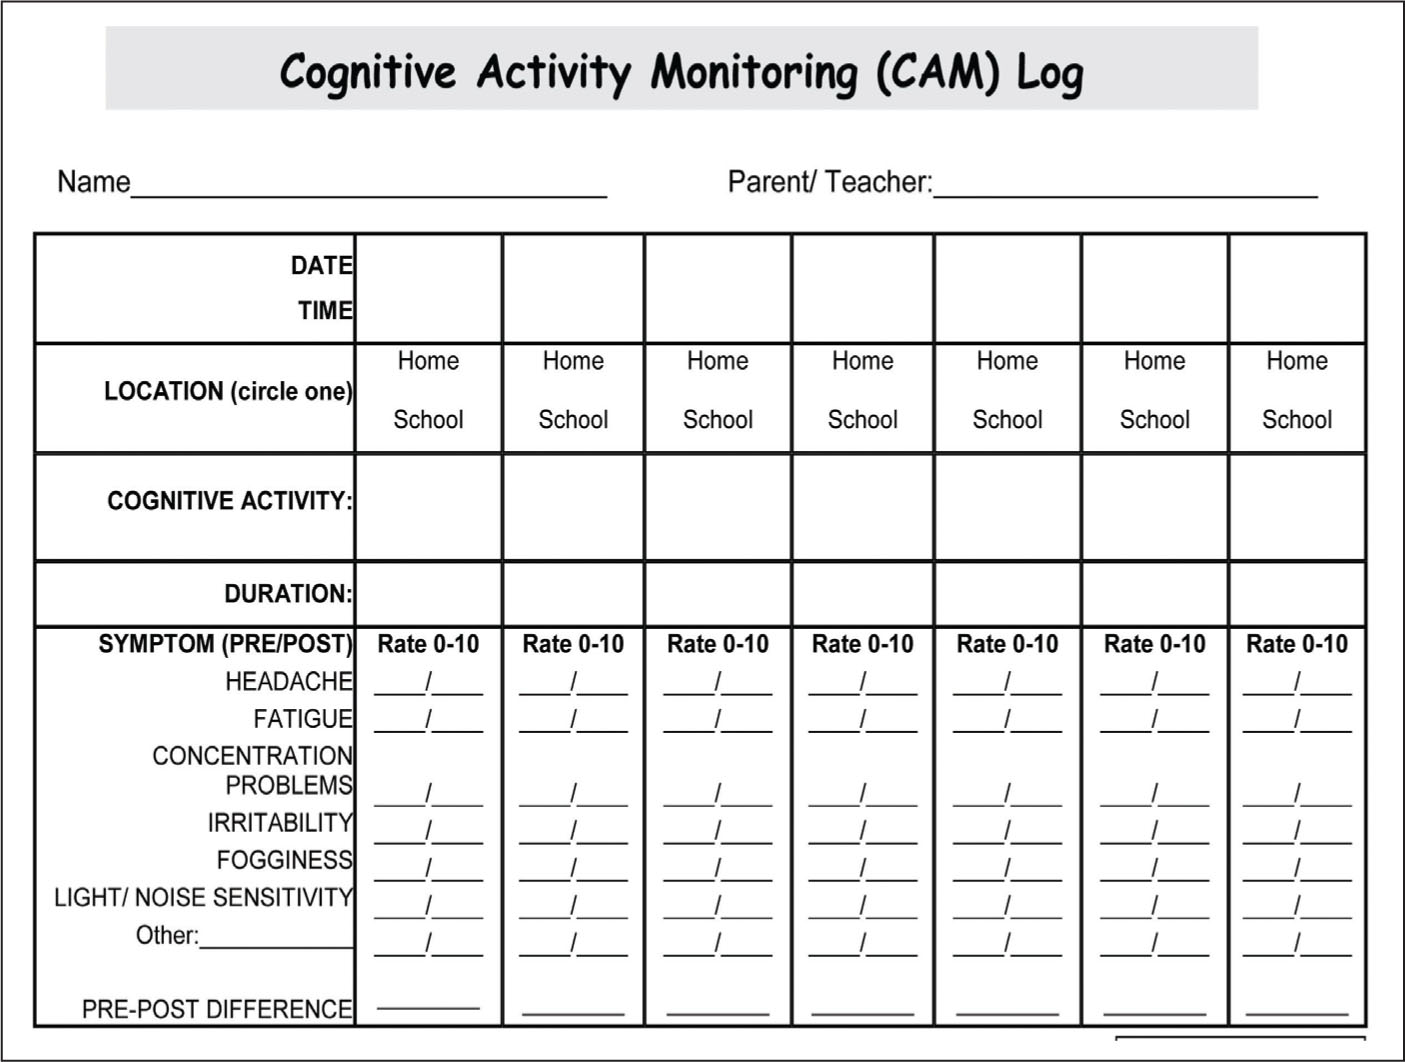 Example of a symptom monitoring tool.Image courtesy of Gerard A. Gioia, Phd. Reprinted with permission.